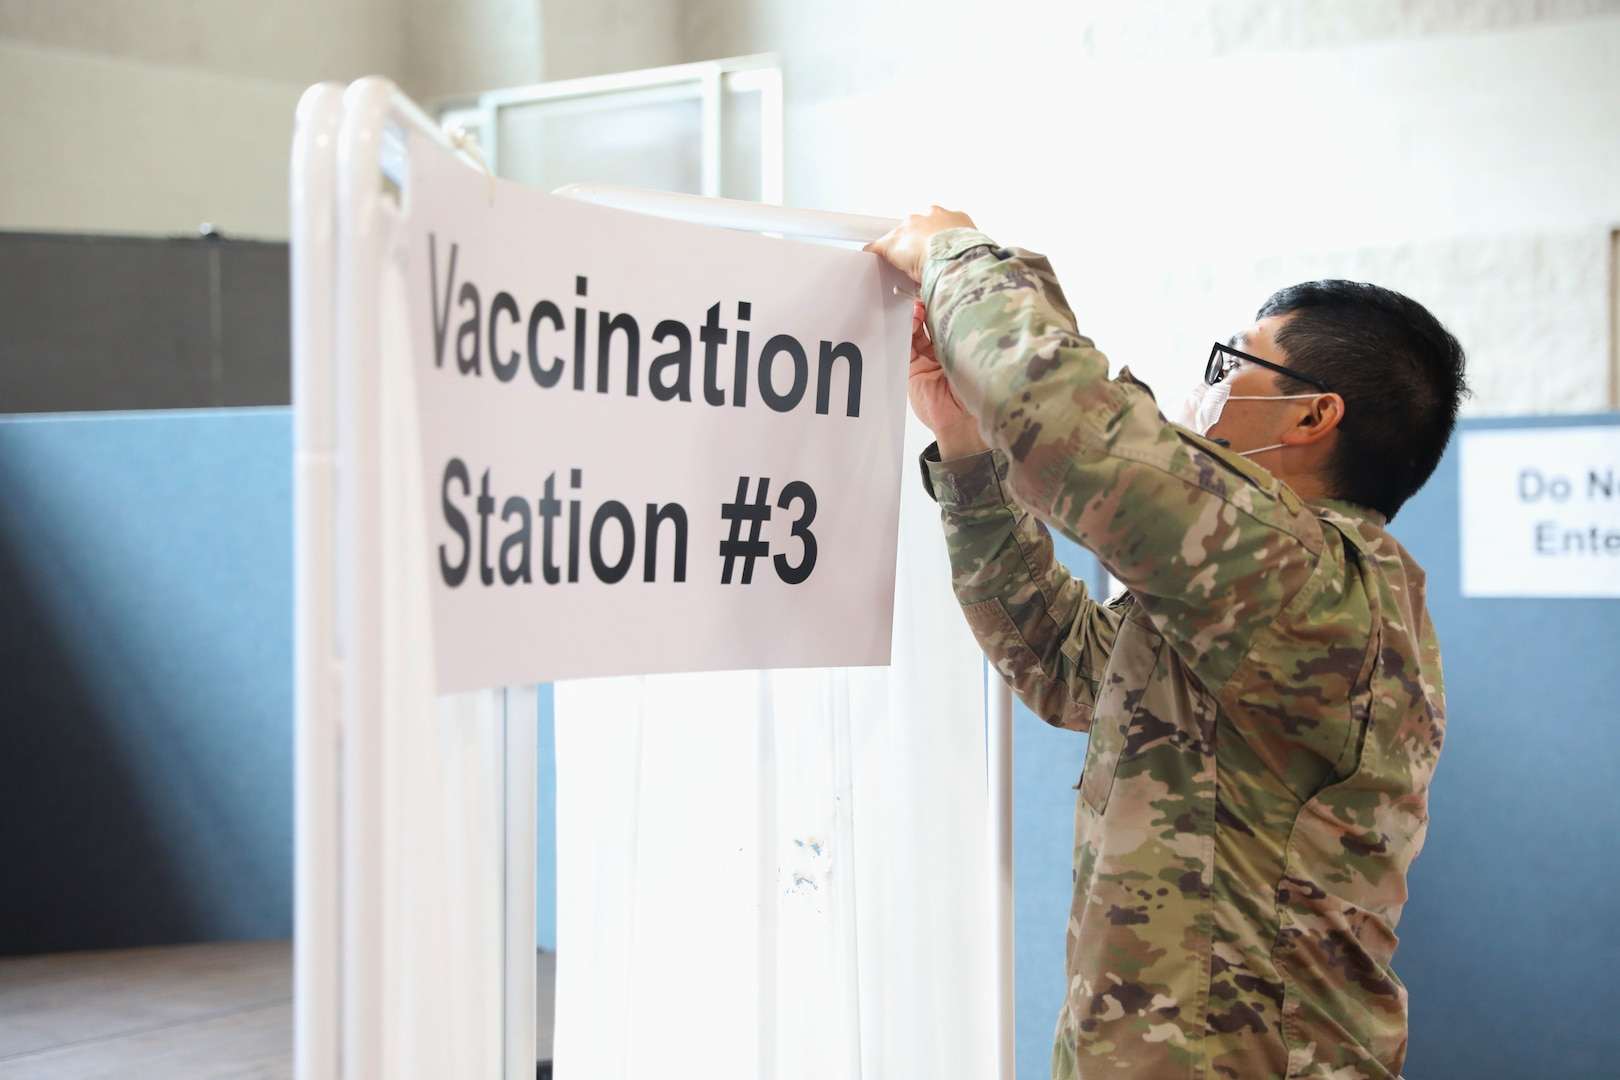 Service member takes down COVID-19 vaccination station signage